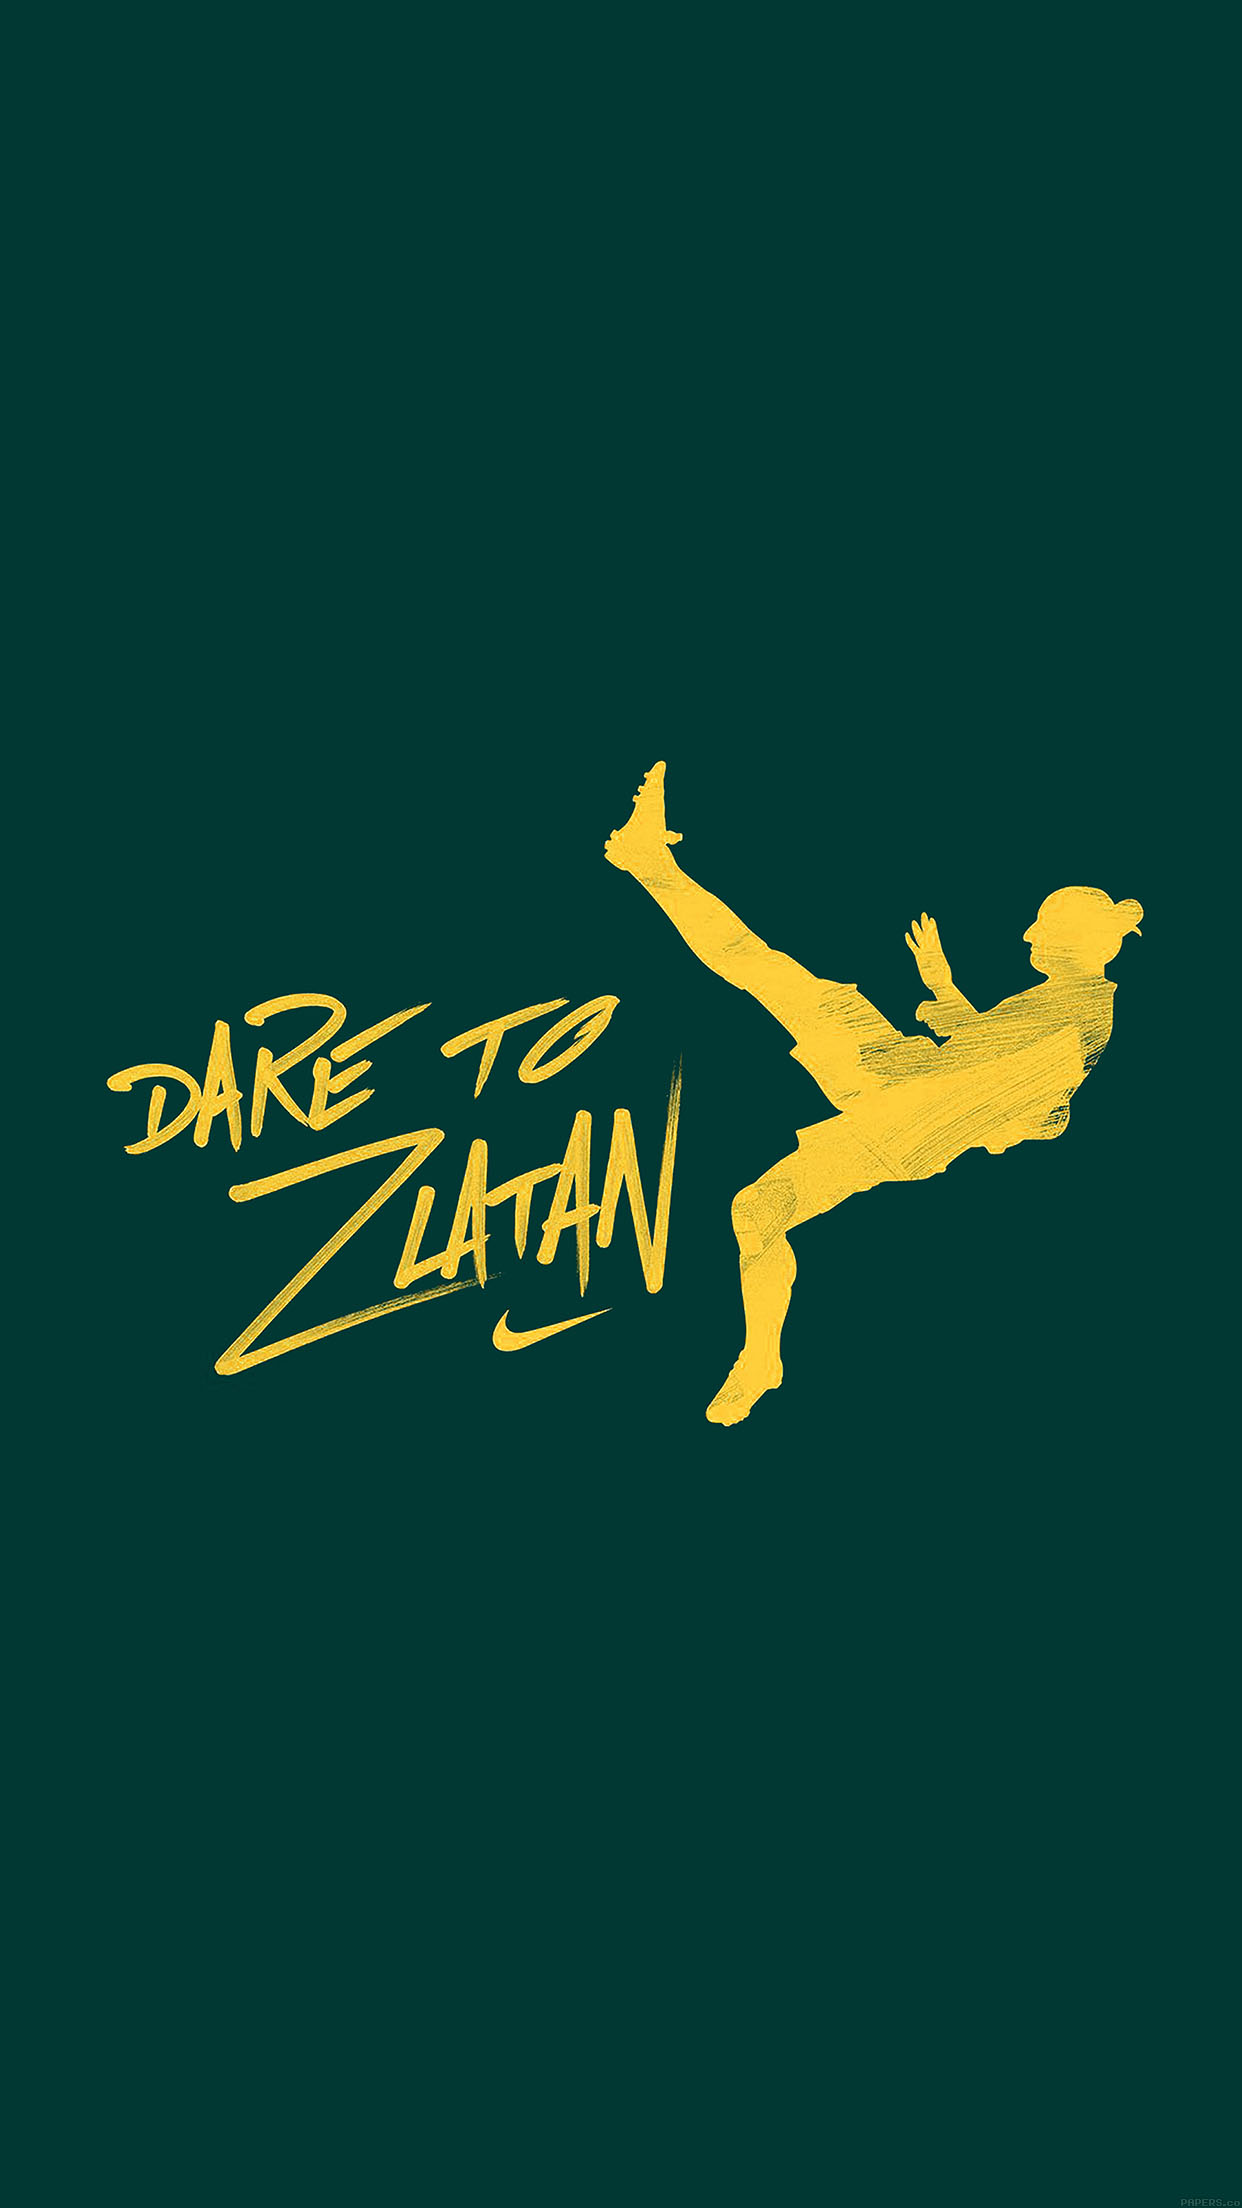 Cute Wallpaper For Android Phone Aa53 Dare To Zlatan Green Sports Art Papers Co